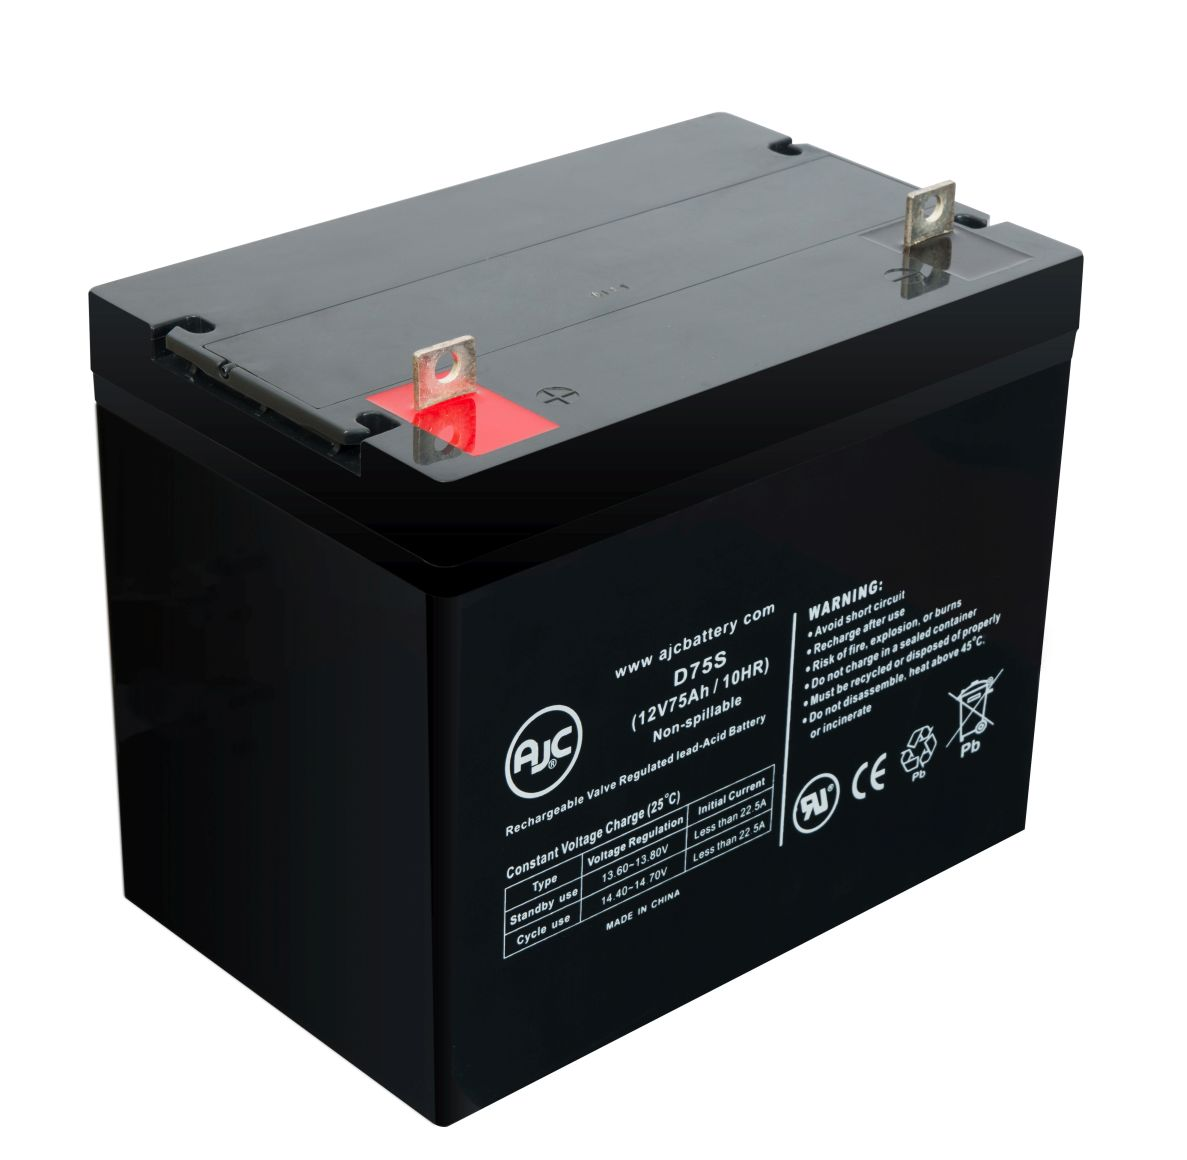 Exide NC-24 12V 75Ah Sealed Lead Acid Battery - This is an AJC Brand® Replacement